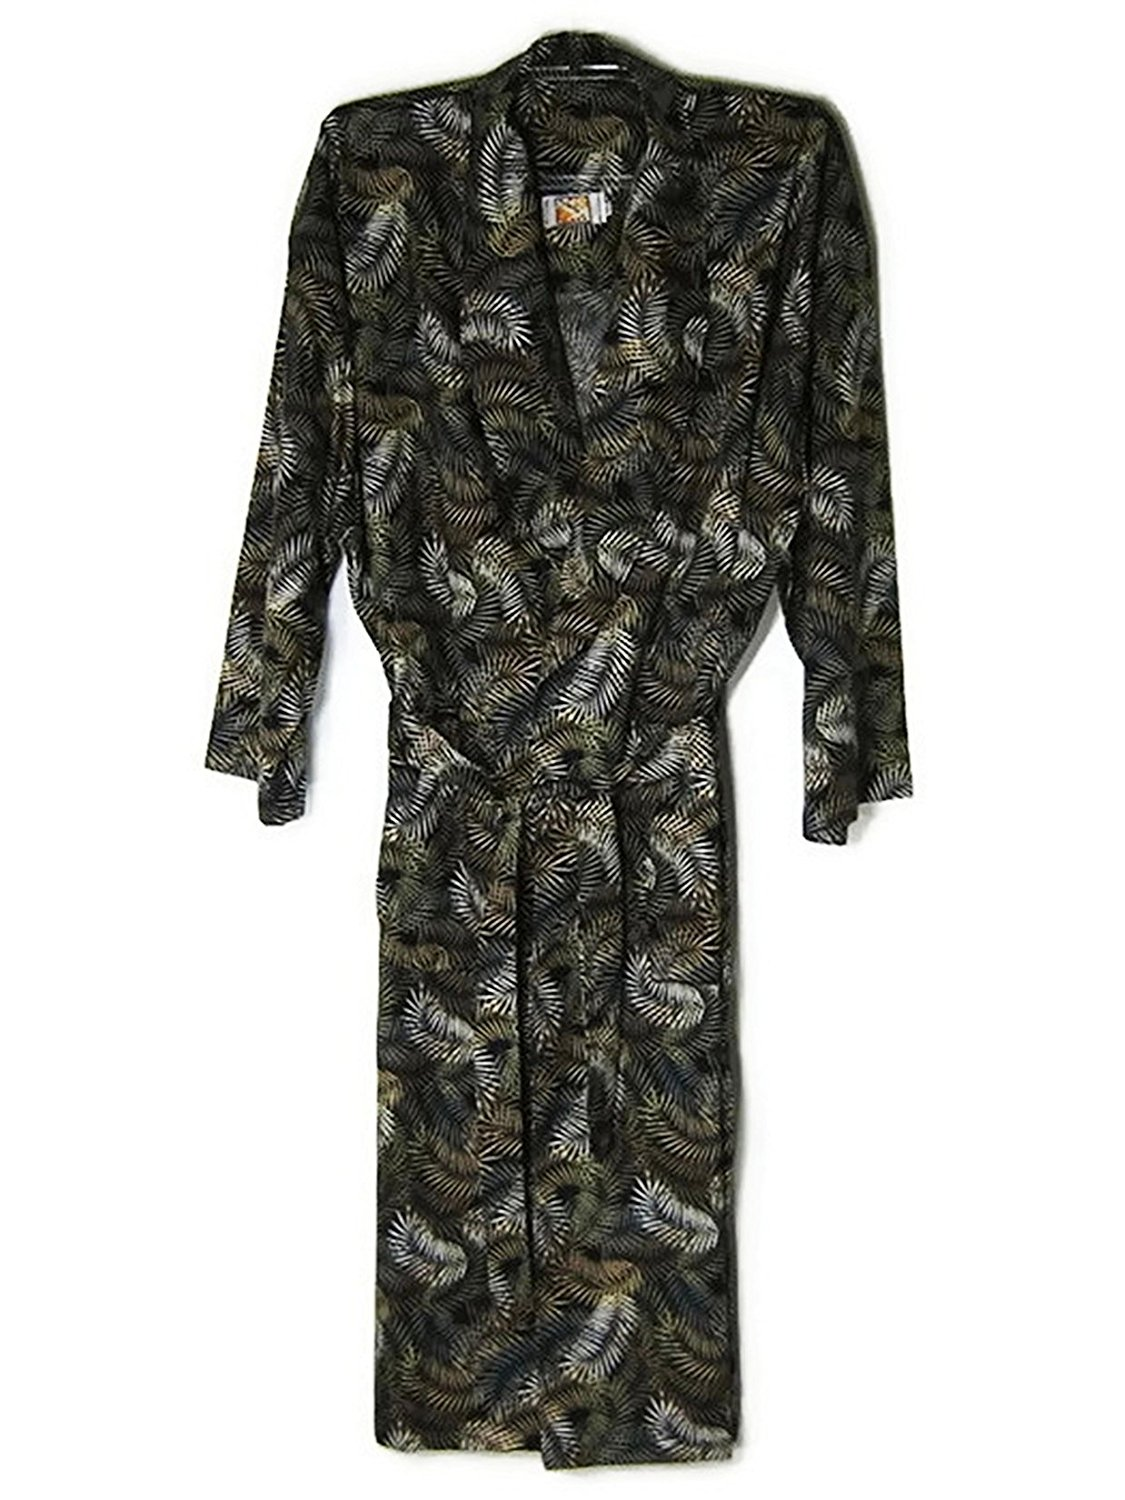 88f742ddb0 Get Quotations · Hello 2XL Big Robes For Mens Sleepwear Robes Brown